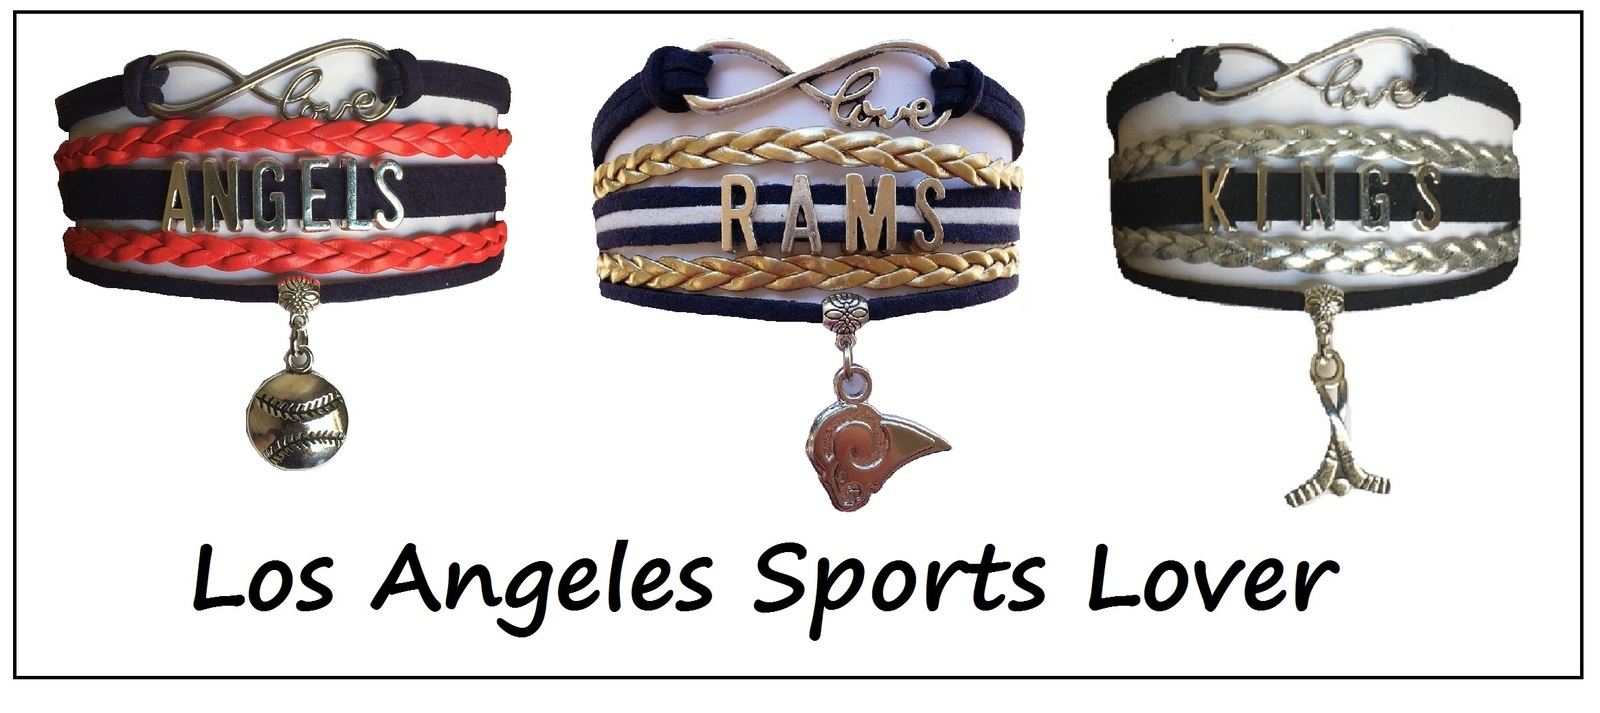 La   angels ram kings